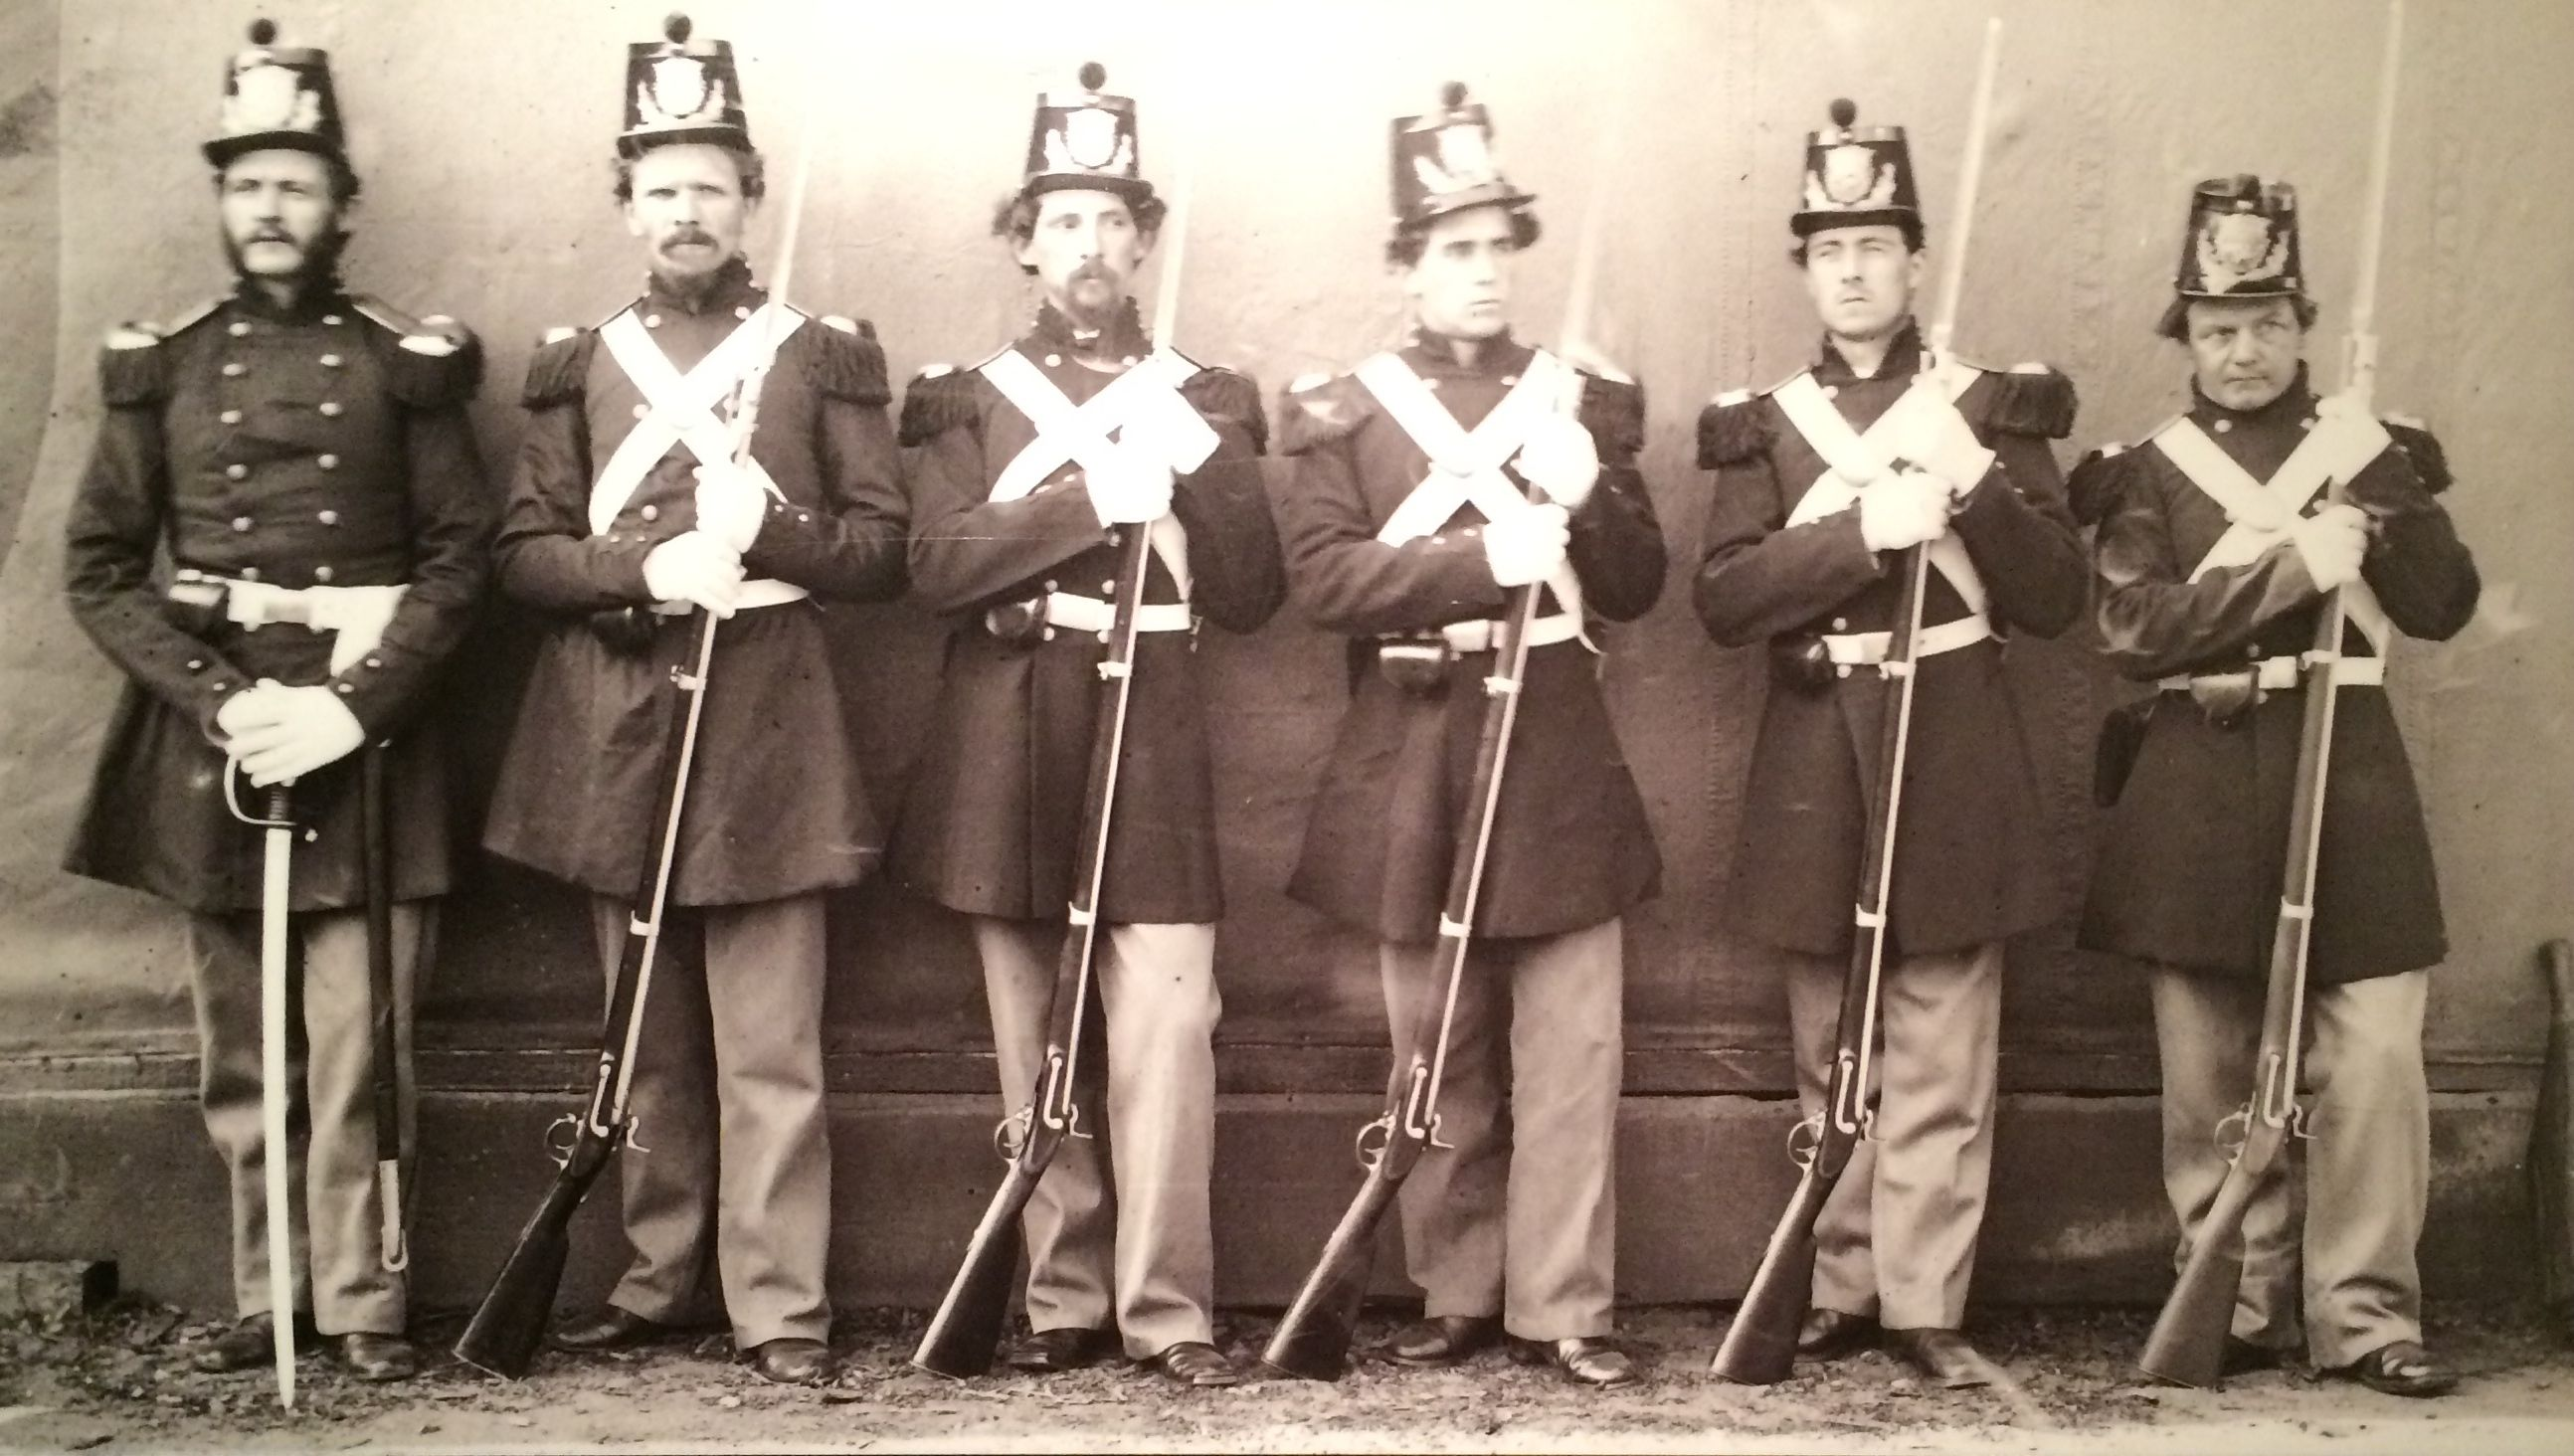 Officer and his men in drew uniform 1864